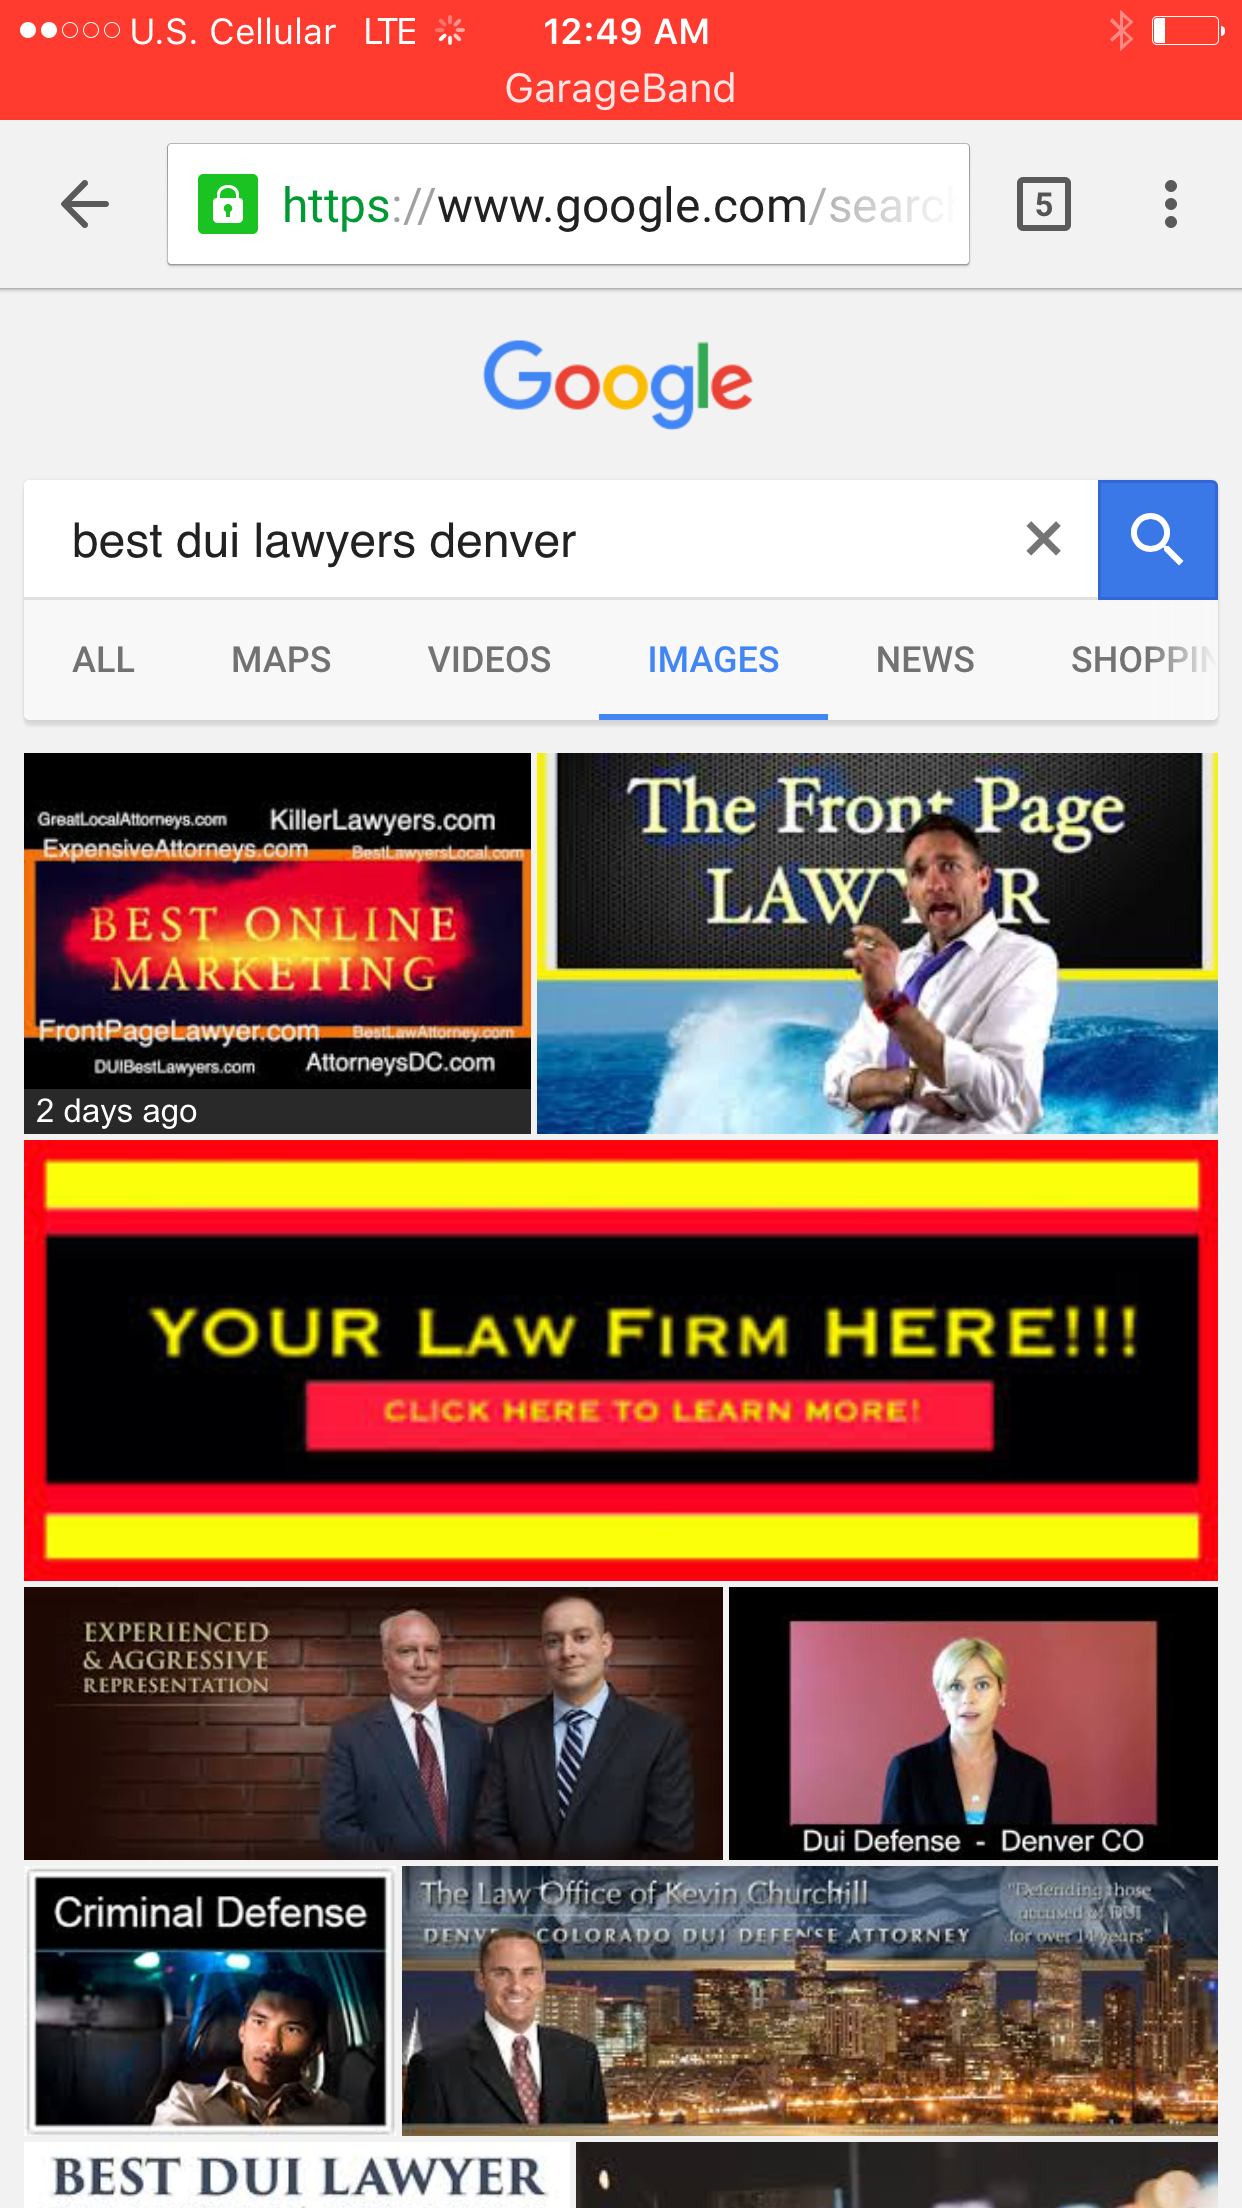 https://vimeo.com/154318213 http://duibeslawyers.com best dui attorneys